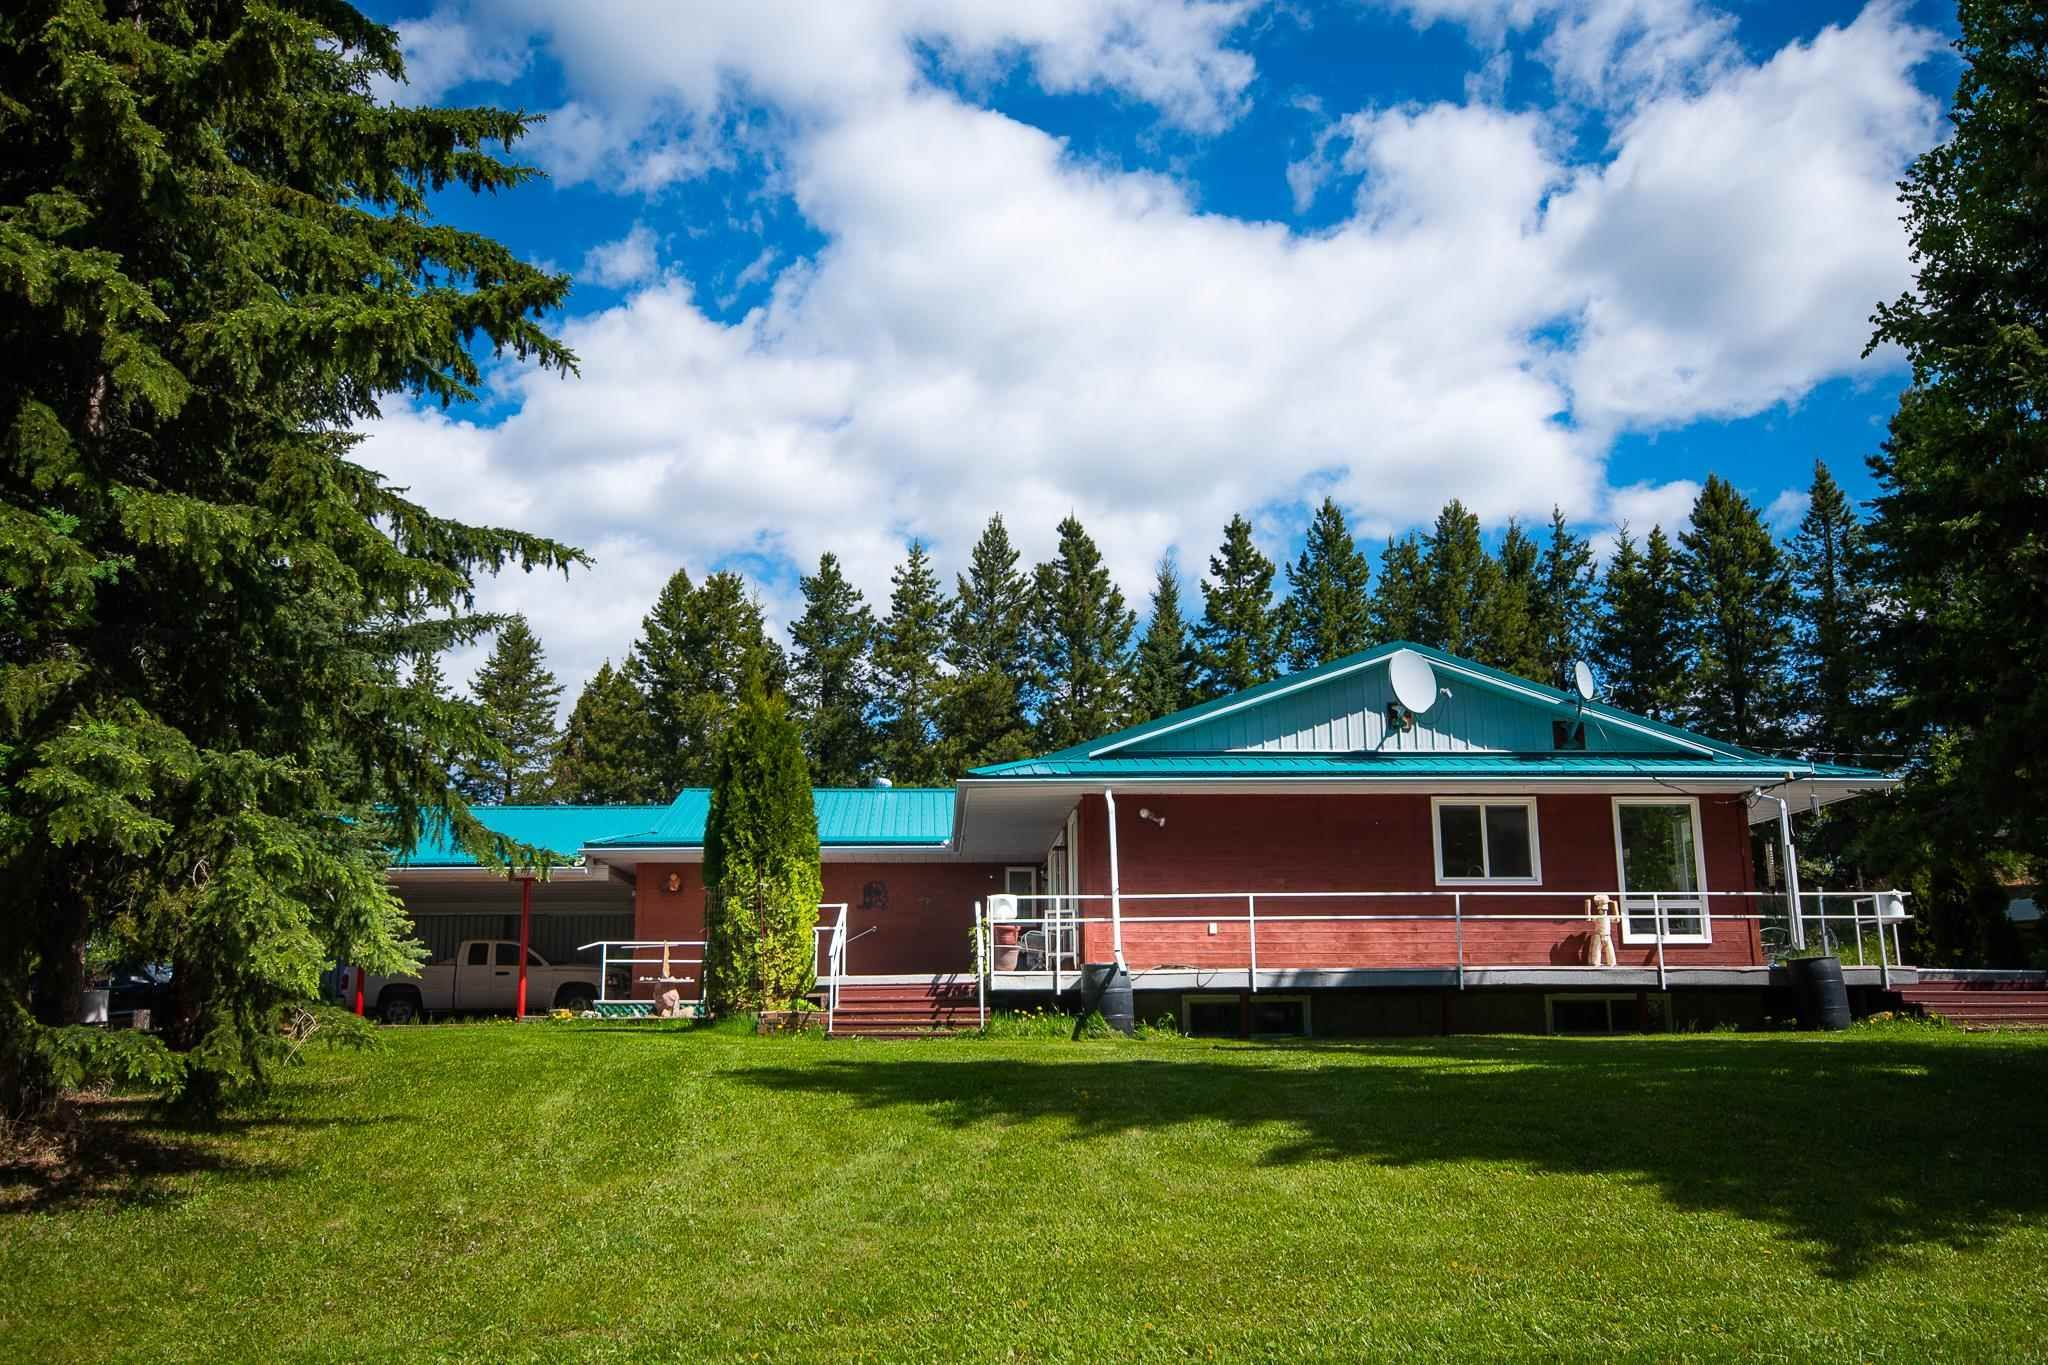 Main Photo: 15 1121 HWY 633: Rural Parkland County House for sale : MLS®# E4246924